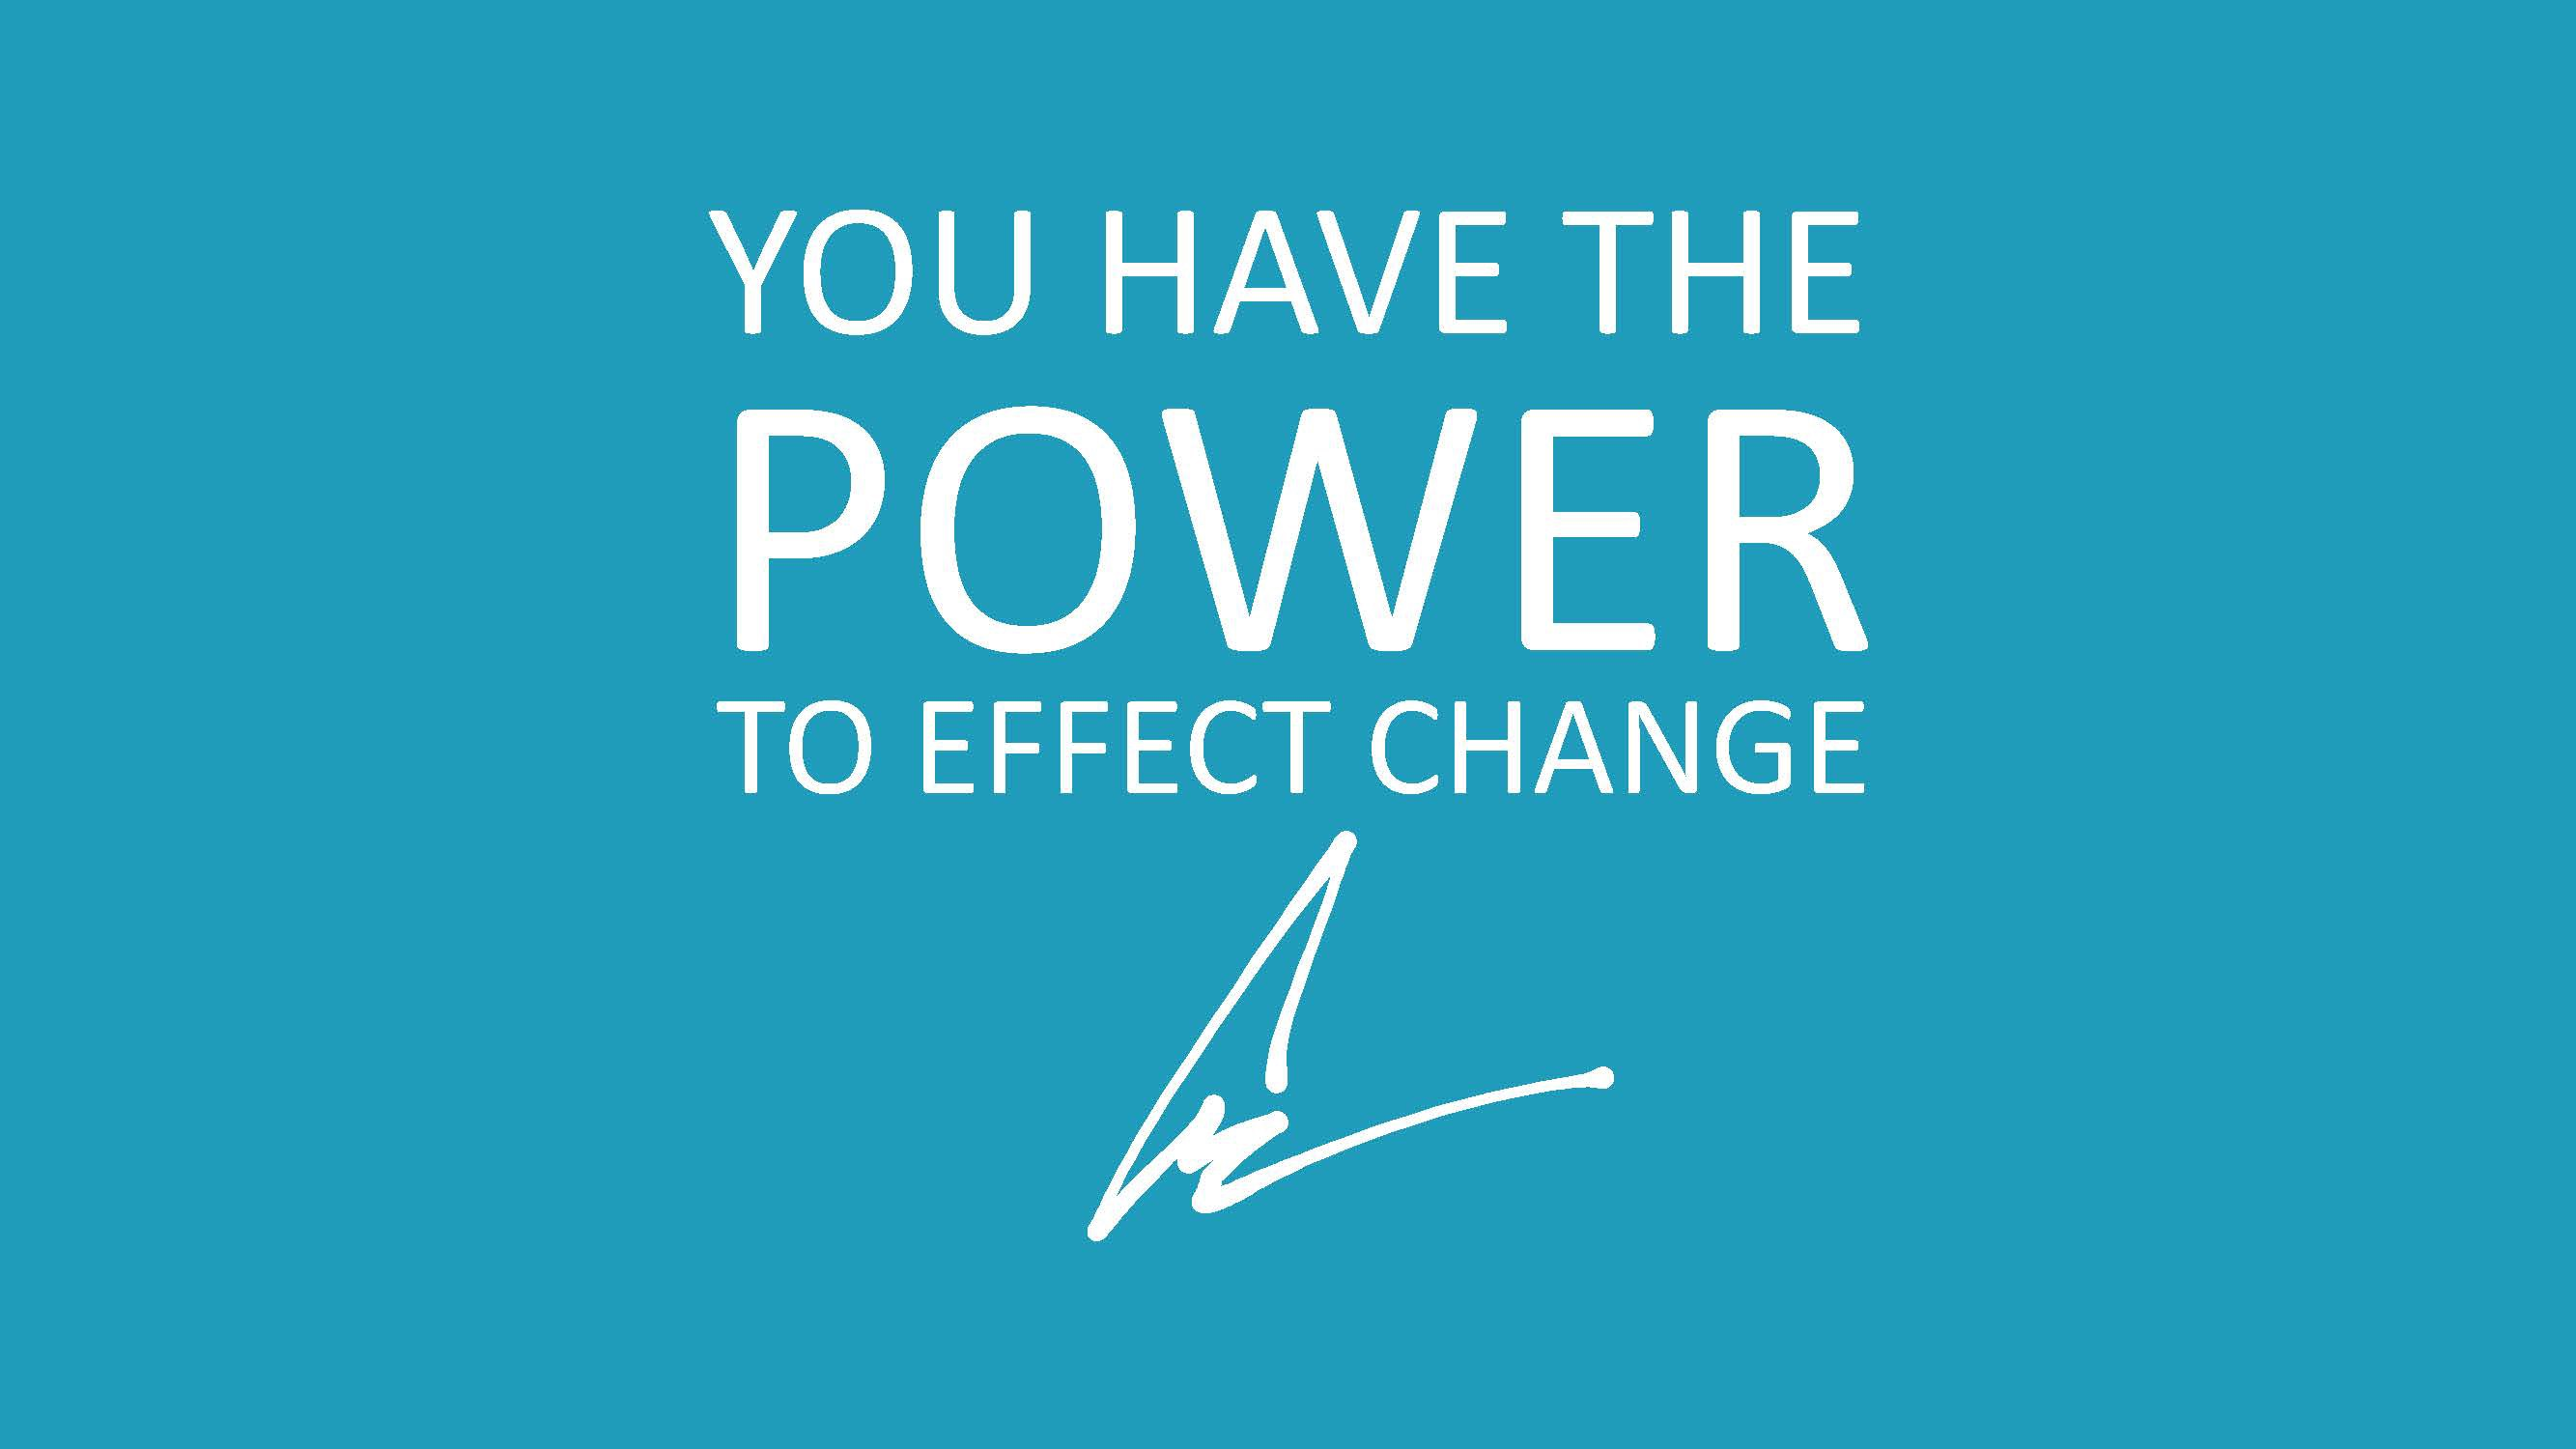 You have the power to effect change.